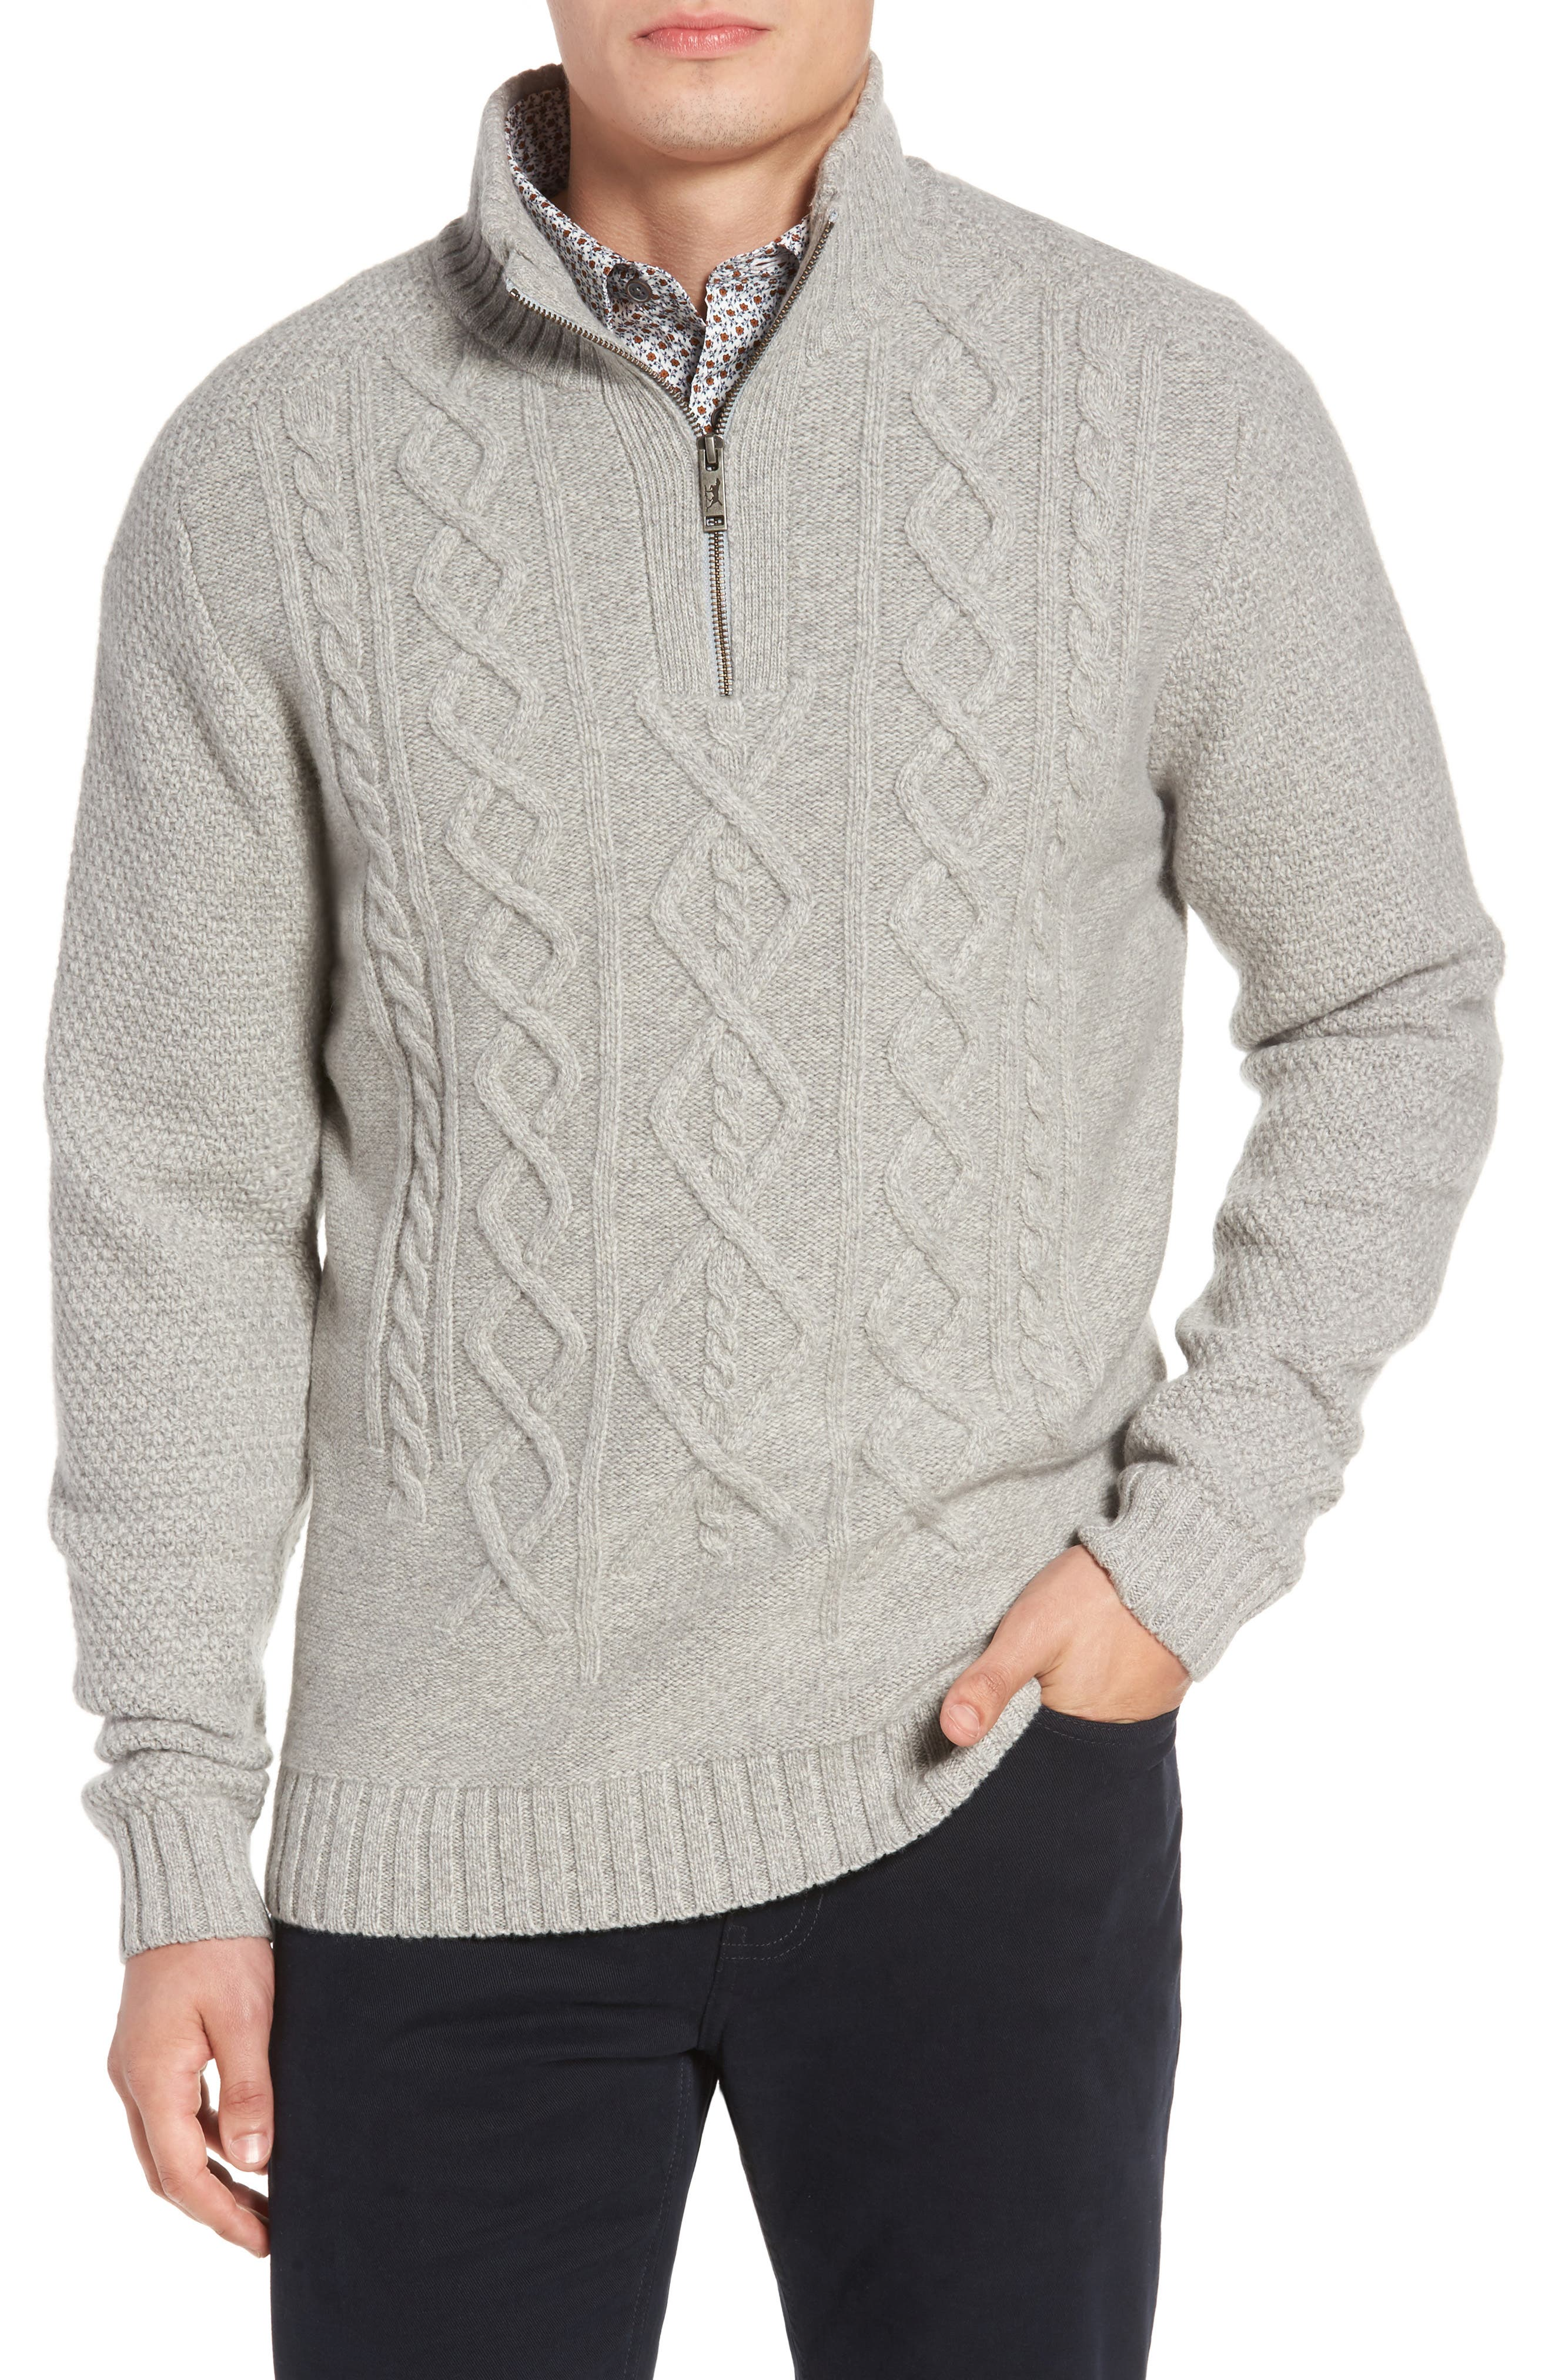 Cape Scoresby Wool Sweater,                             Main thumbnail 1, color,